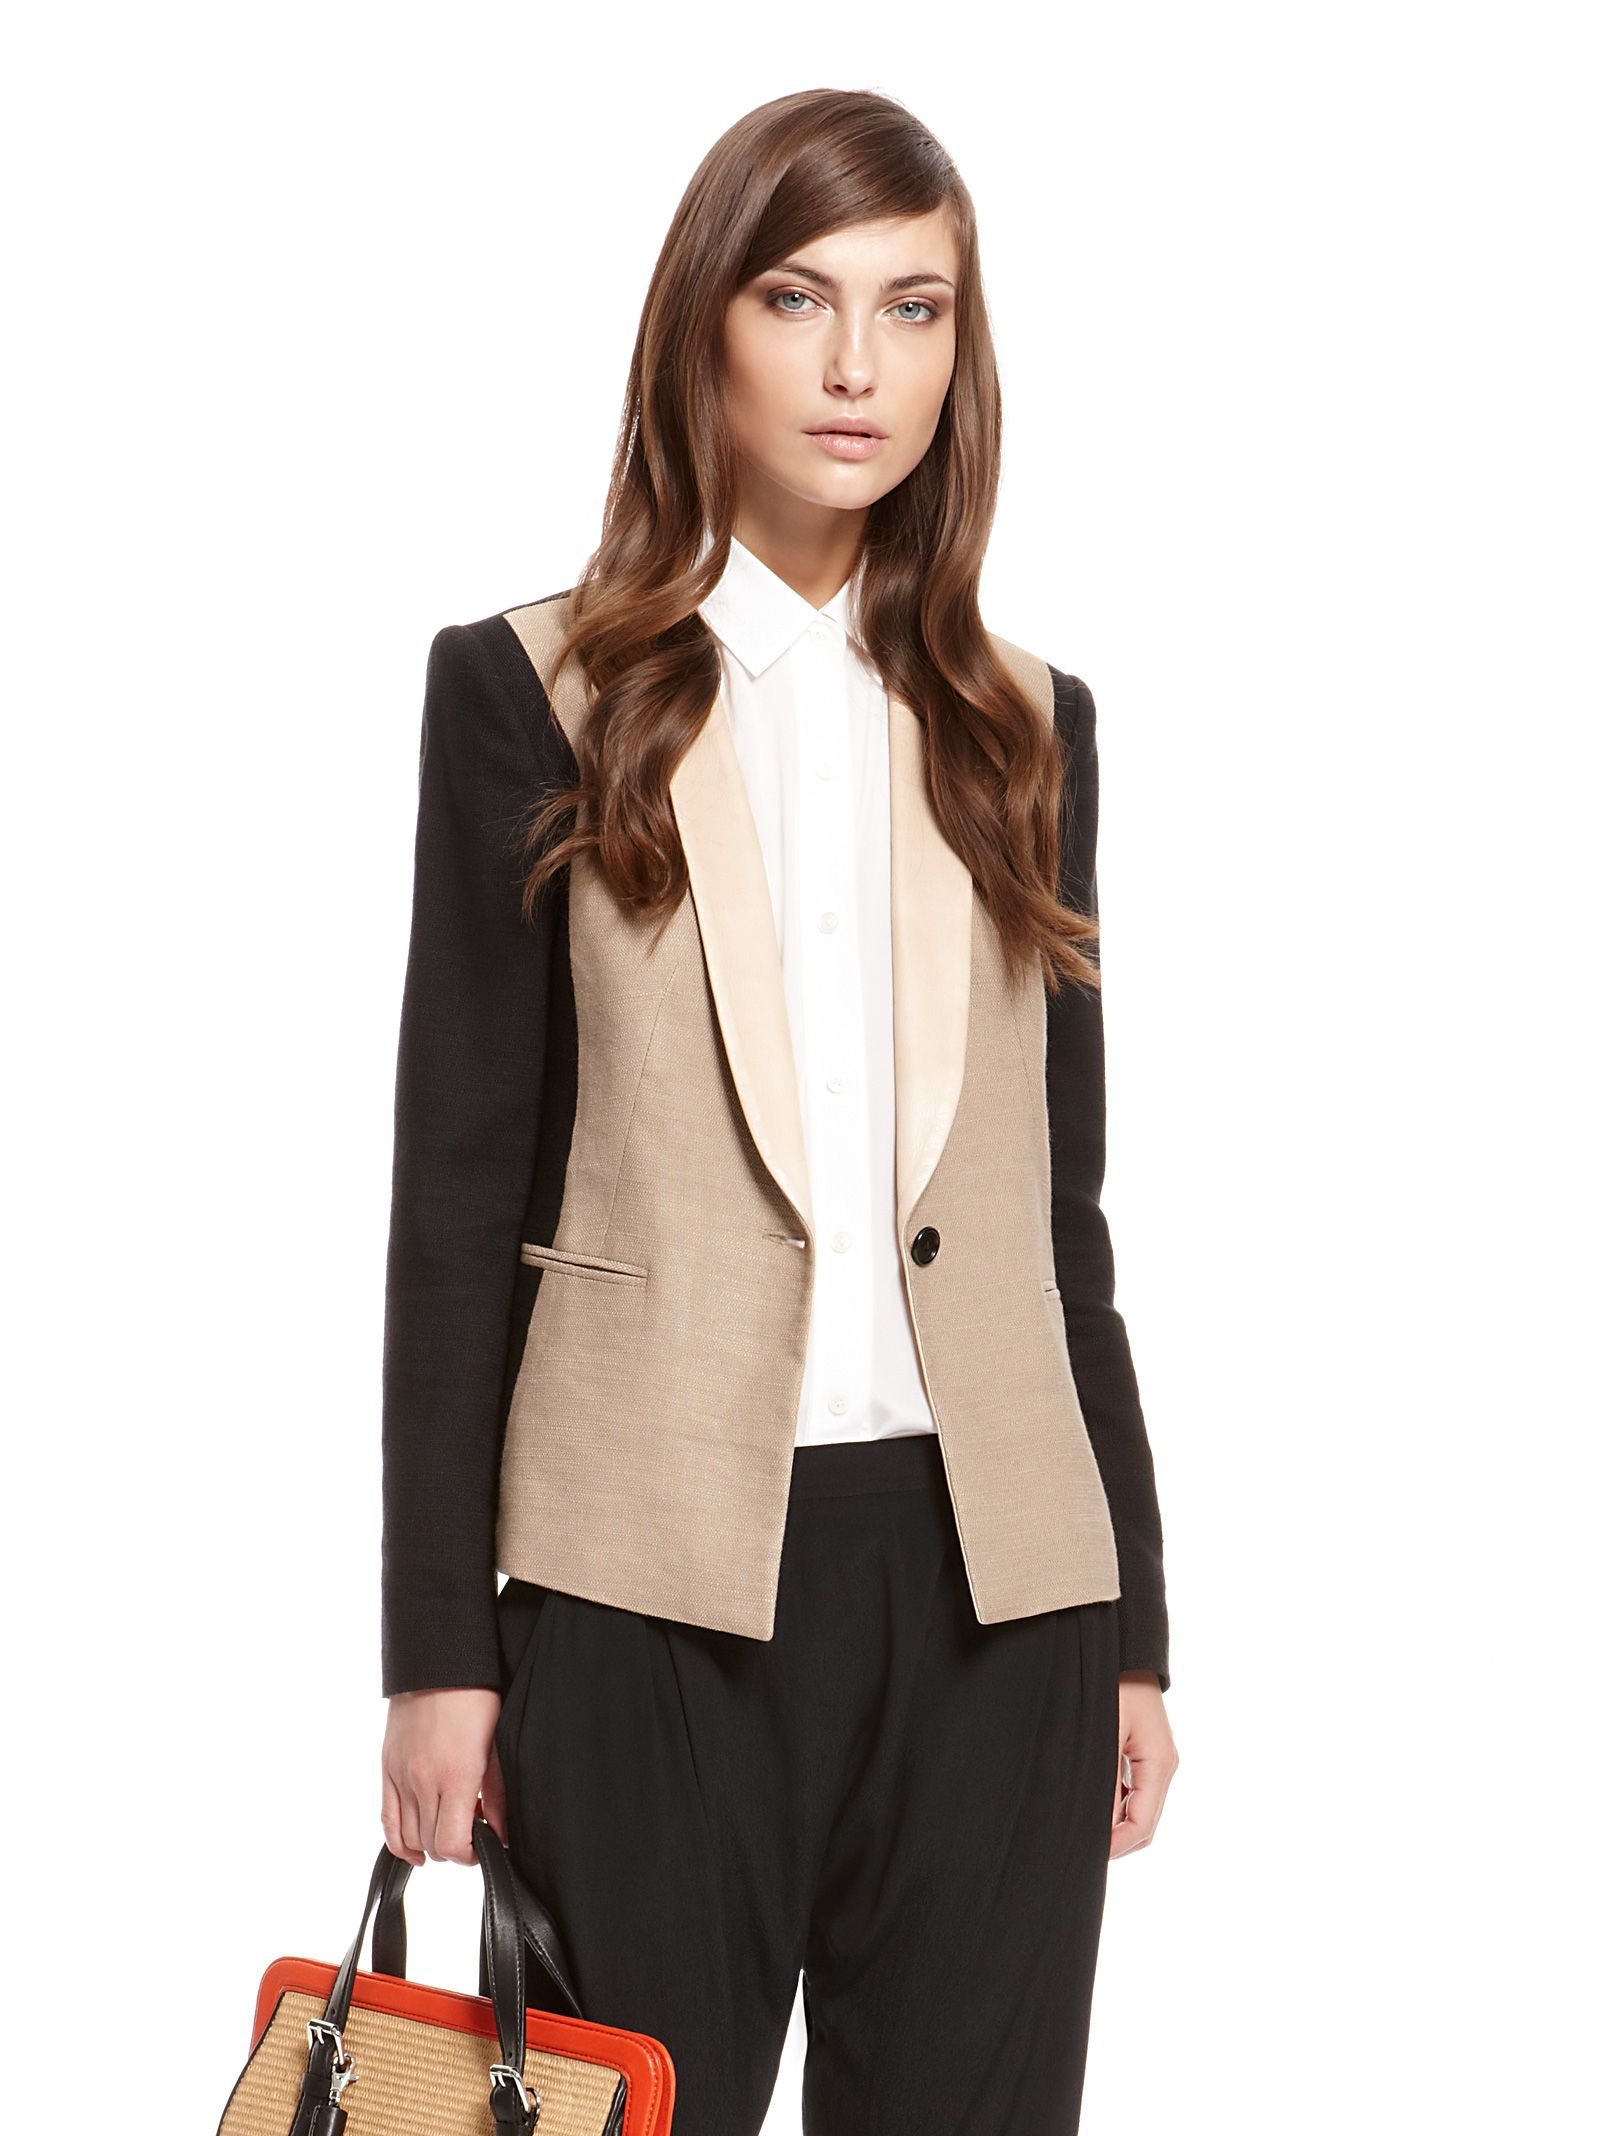 DKNY Runway Stretch Linen Texture Color Blocked Jacket With Leather Shawl Collar